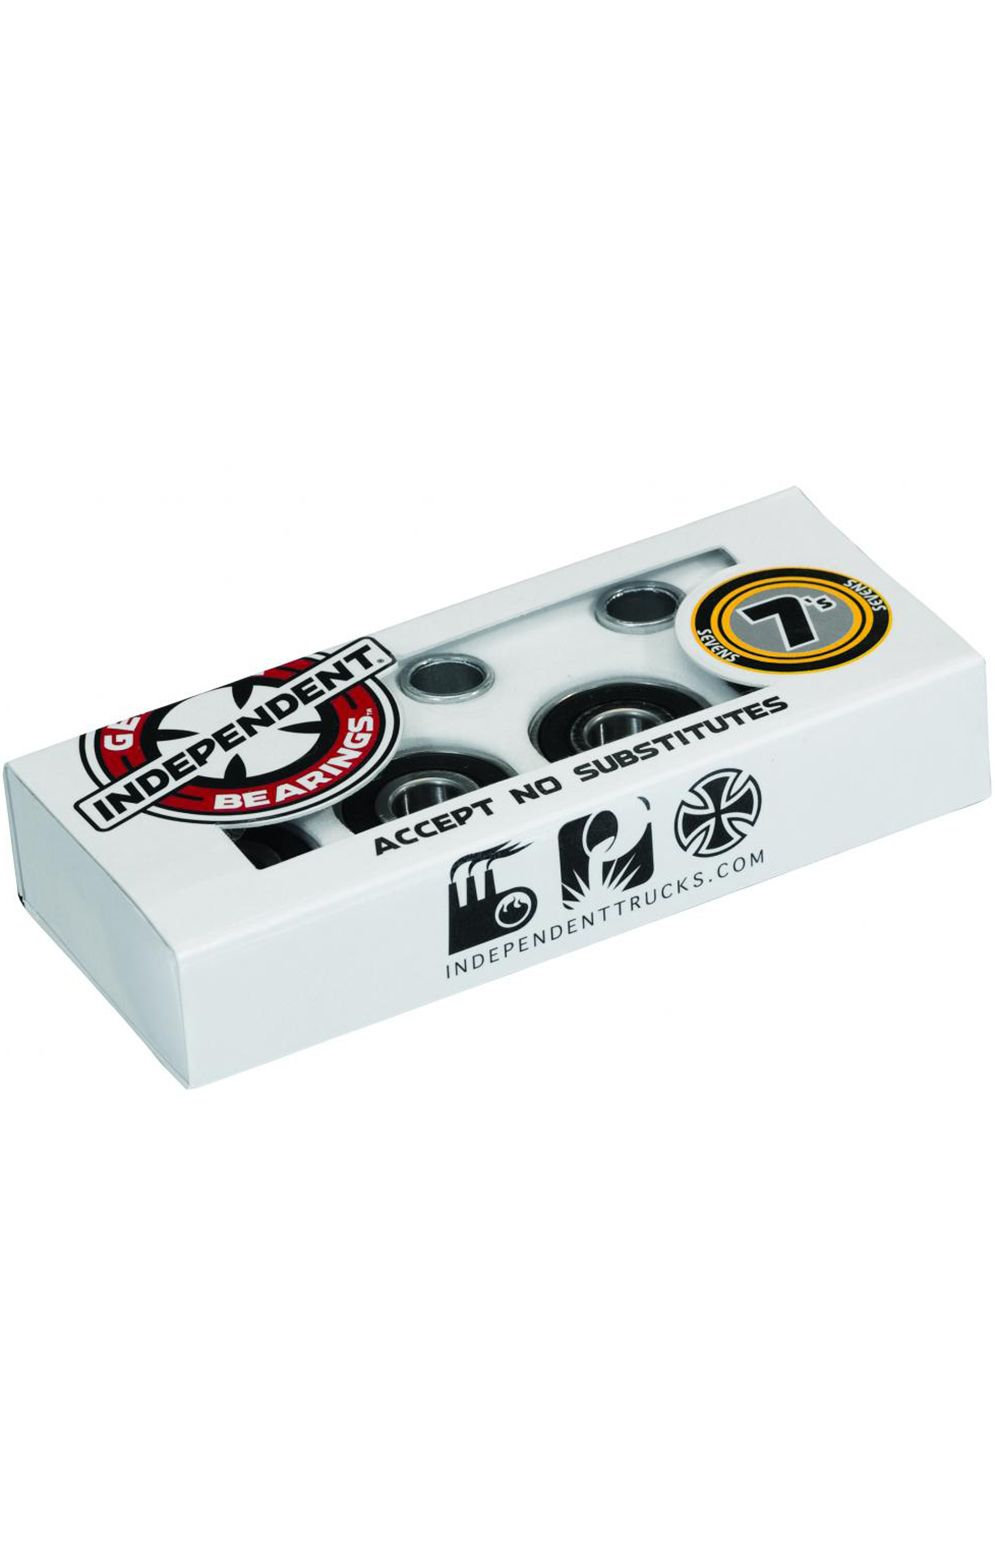 Rolamentos Independent ABEC-7 Assorted